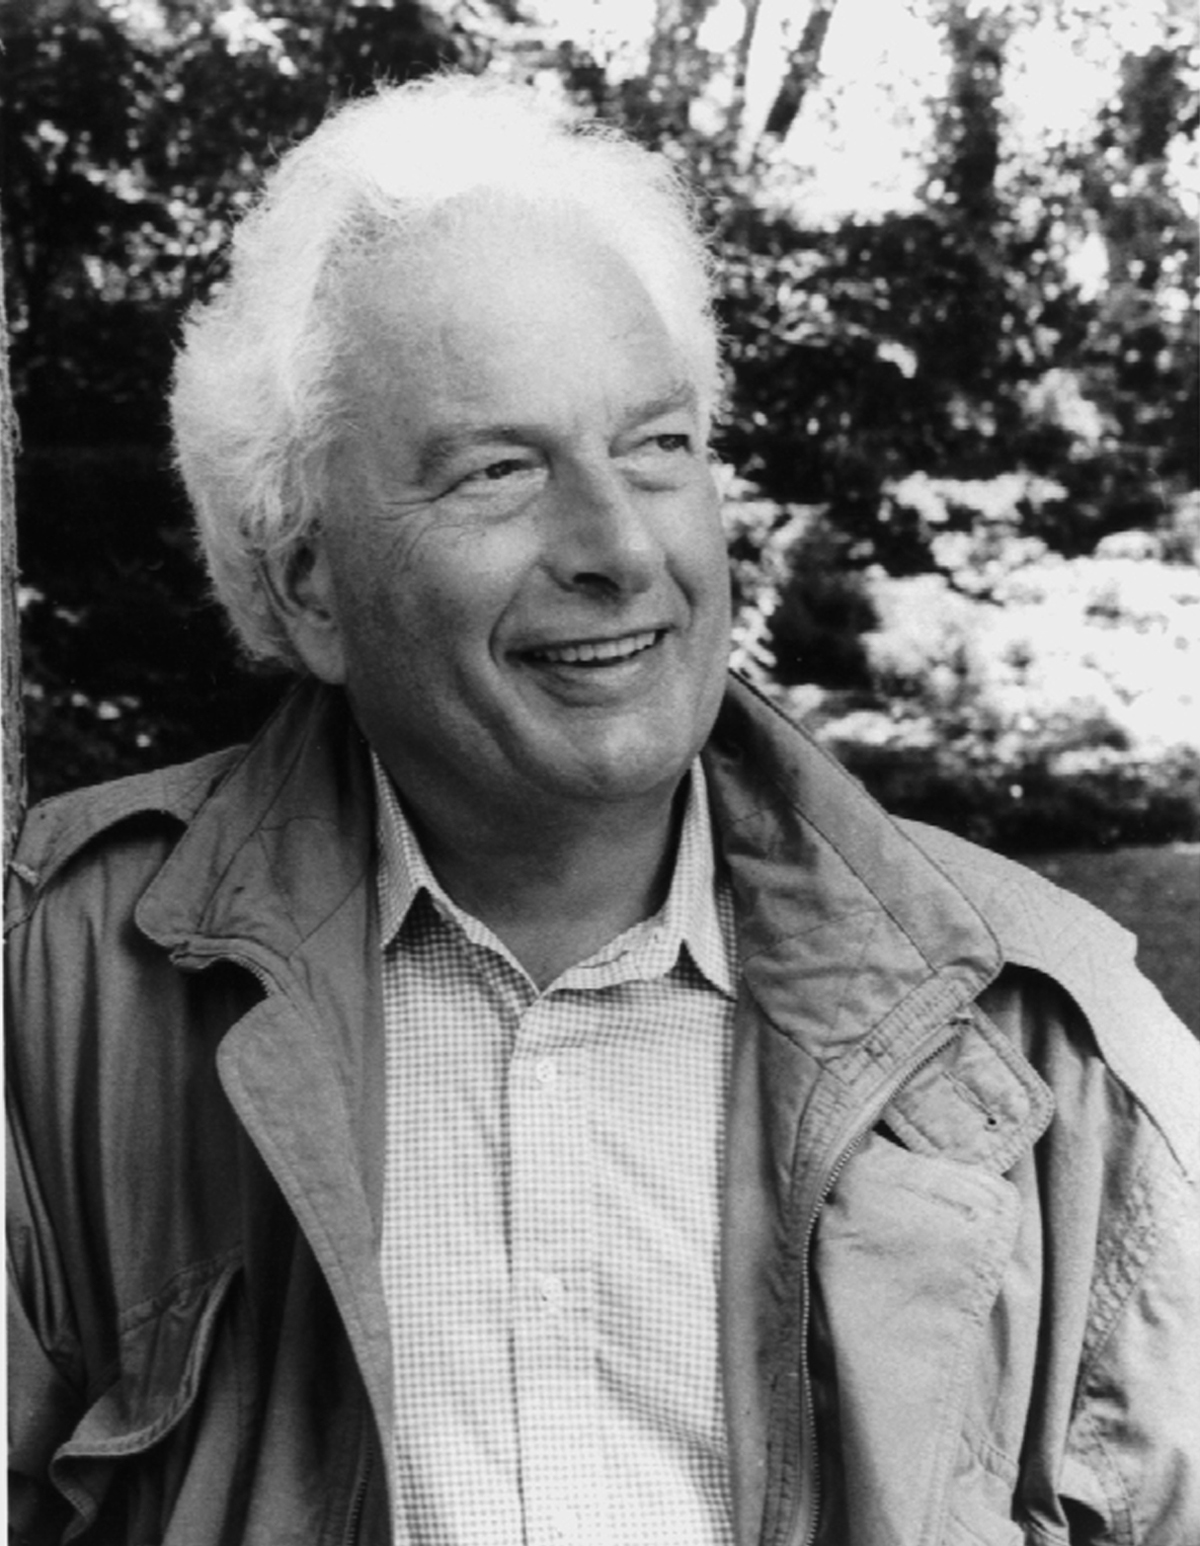 yossarians opposition to war in catch 22 a novel by joseph heller Free summary and analysis of the events in joseph heller's catch-22 that won't  make you snore  yossarian has one wish: to survive the madness of war.